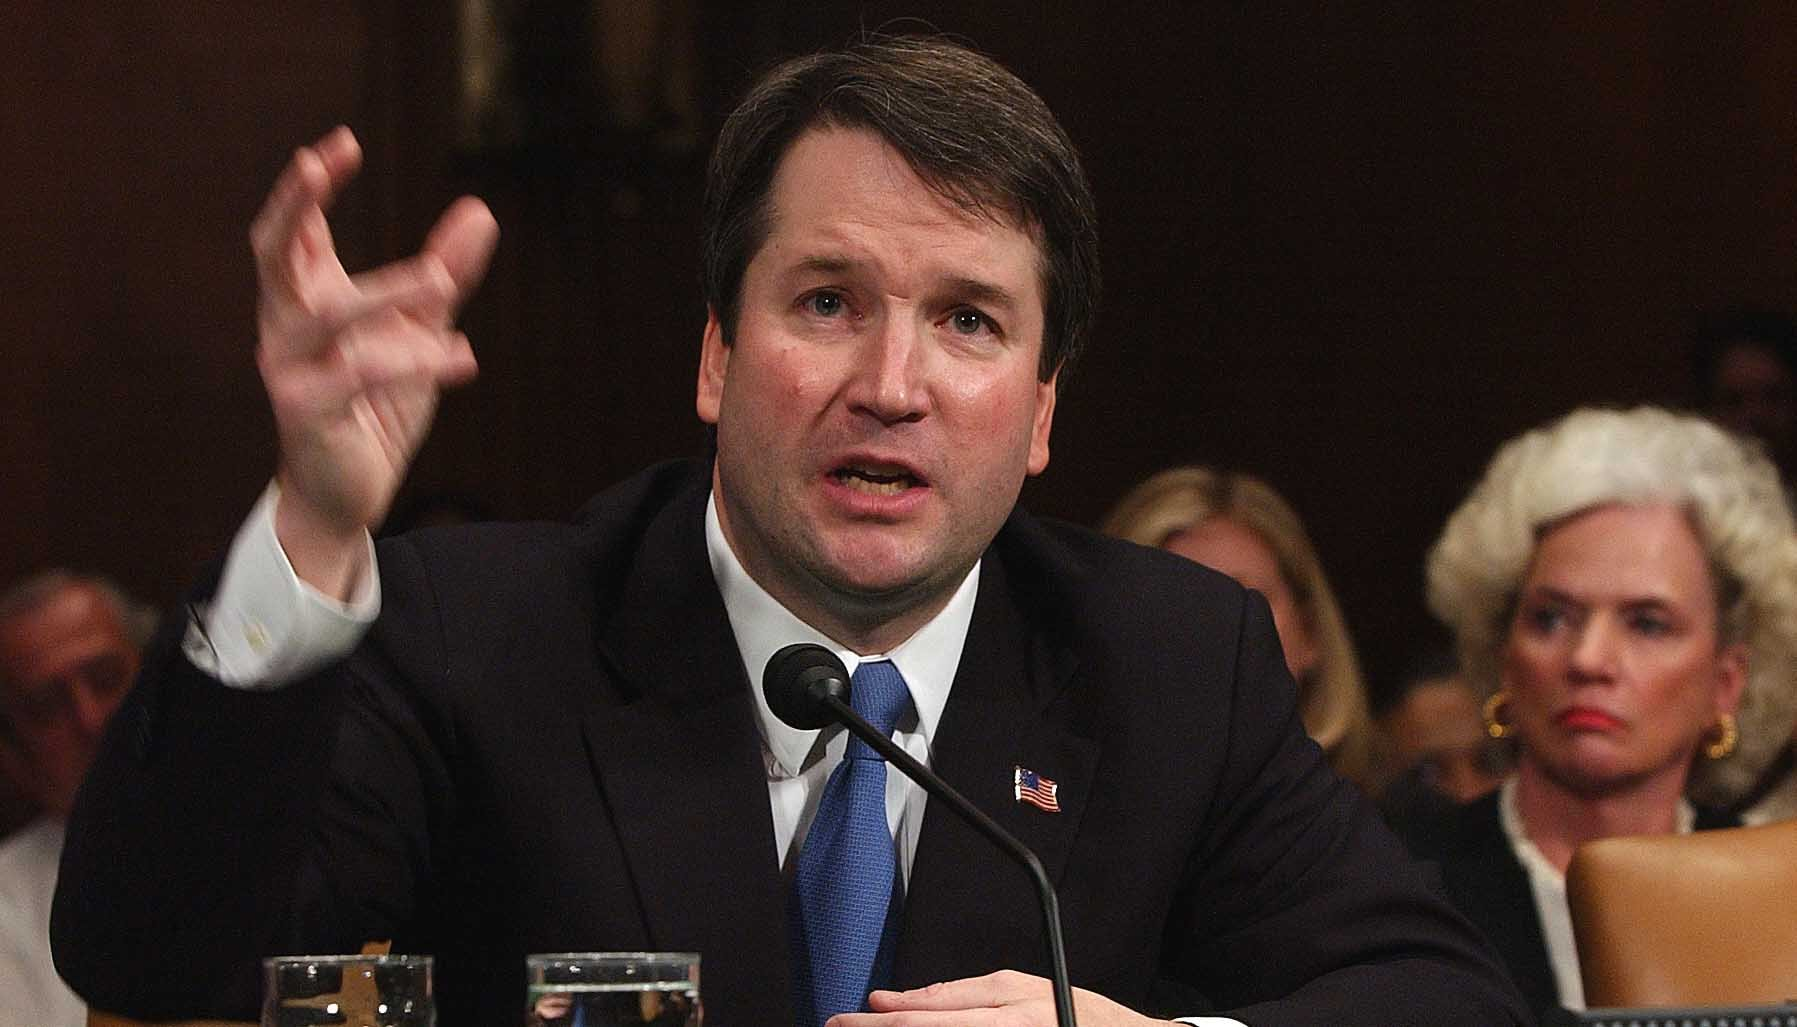 Donald Trump nominates Judge Brett Kavanaugh to Supreme Court